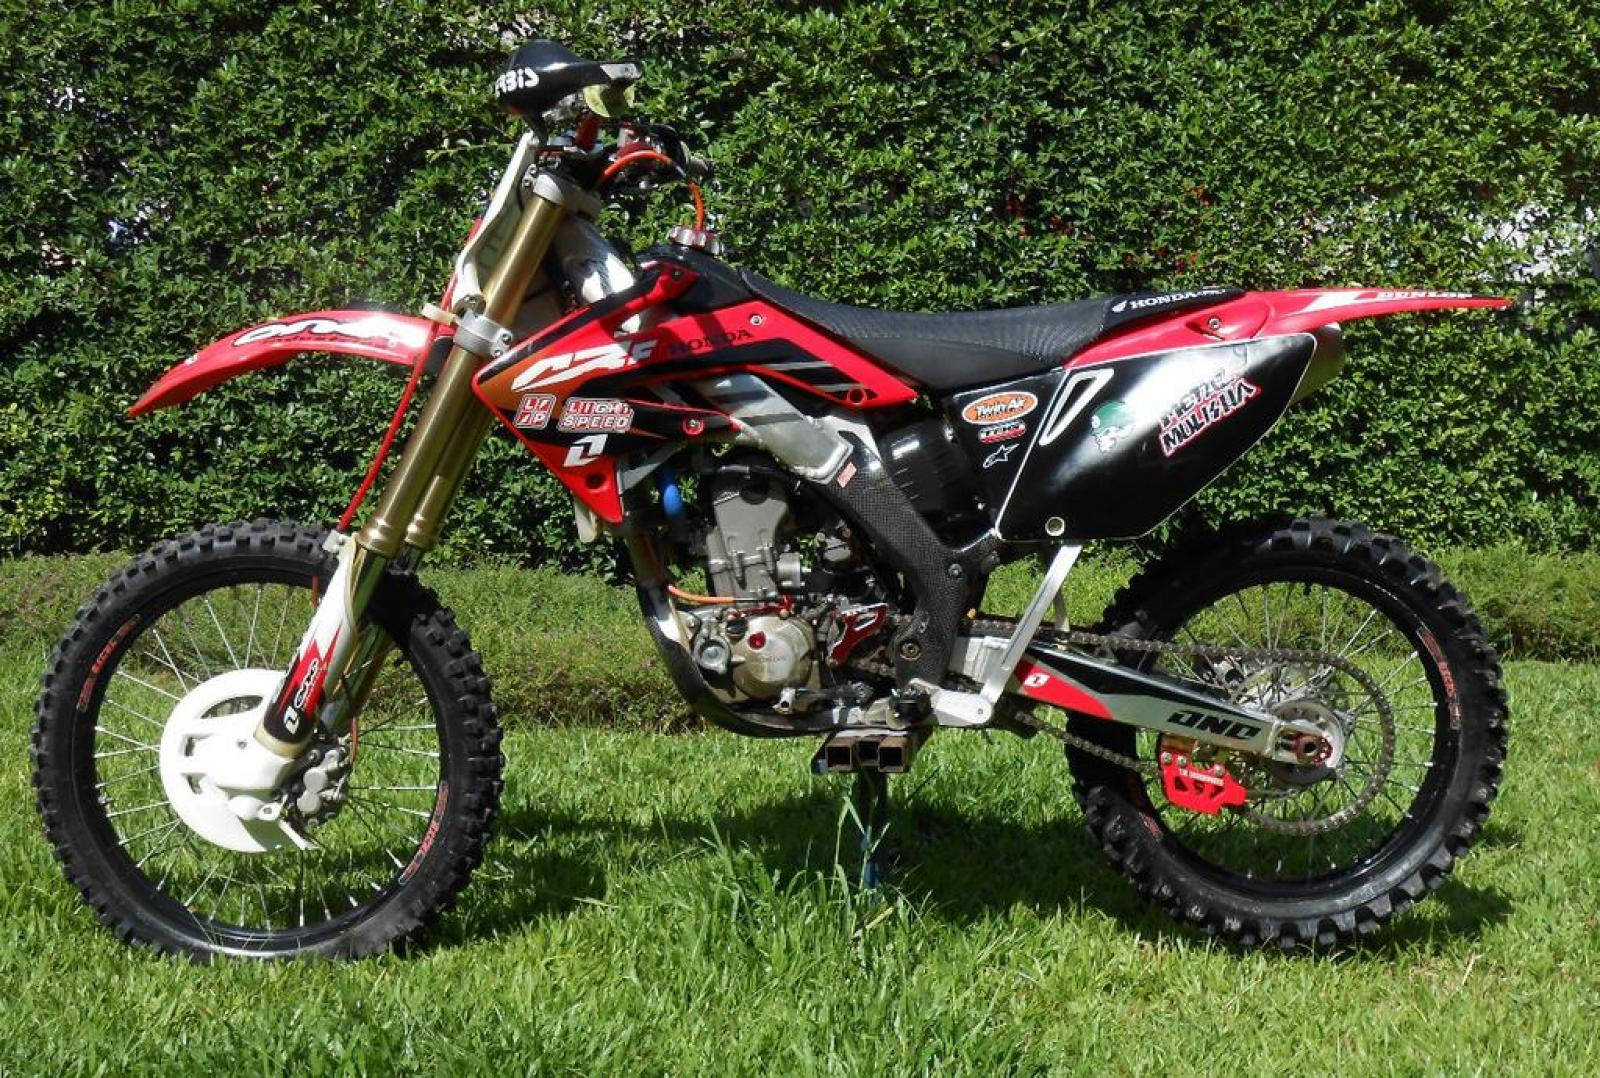 Tremendous 2006 Honda Crf250X Moto Zombdrive Com Gmtry Best Dining Table And Chair Ideas Images Gmtryco